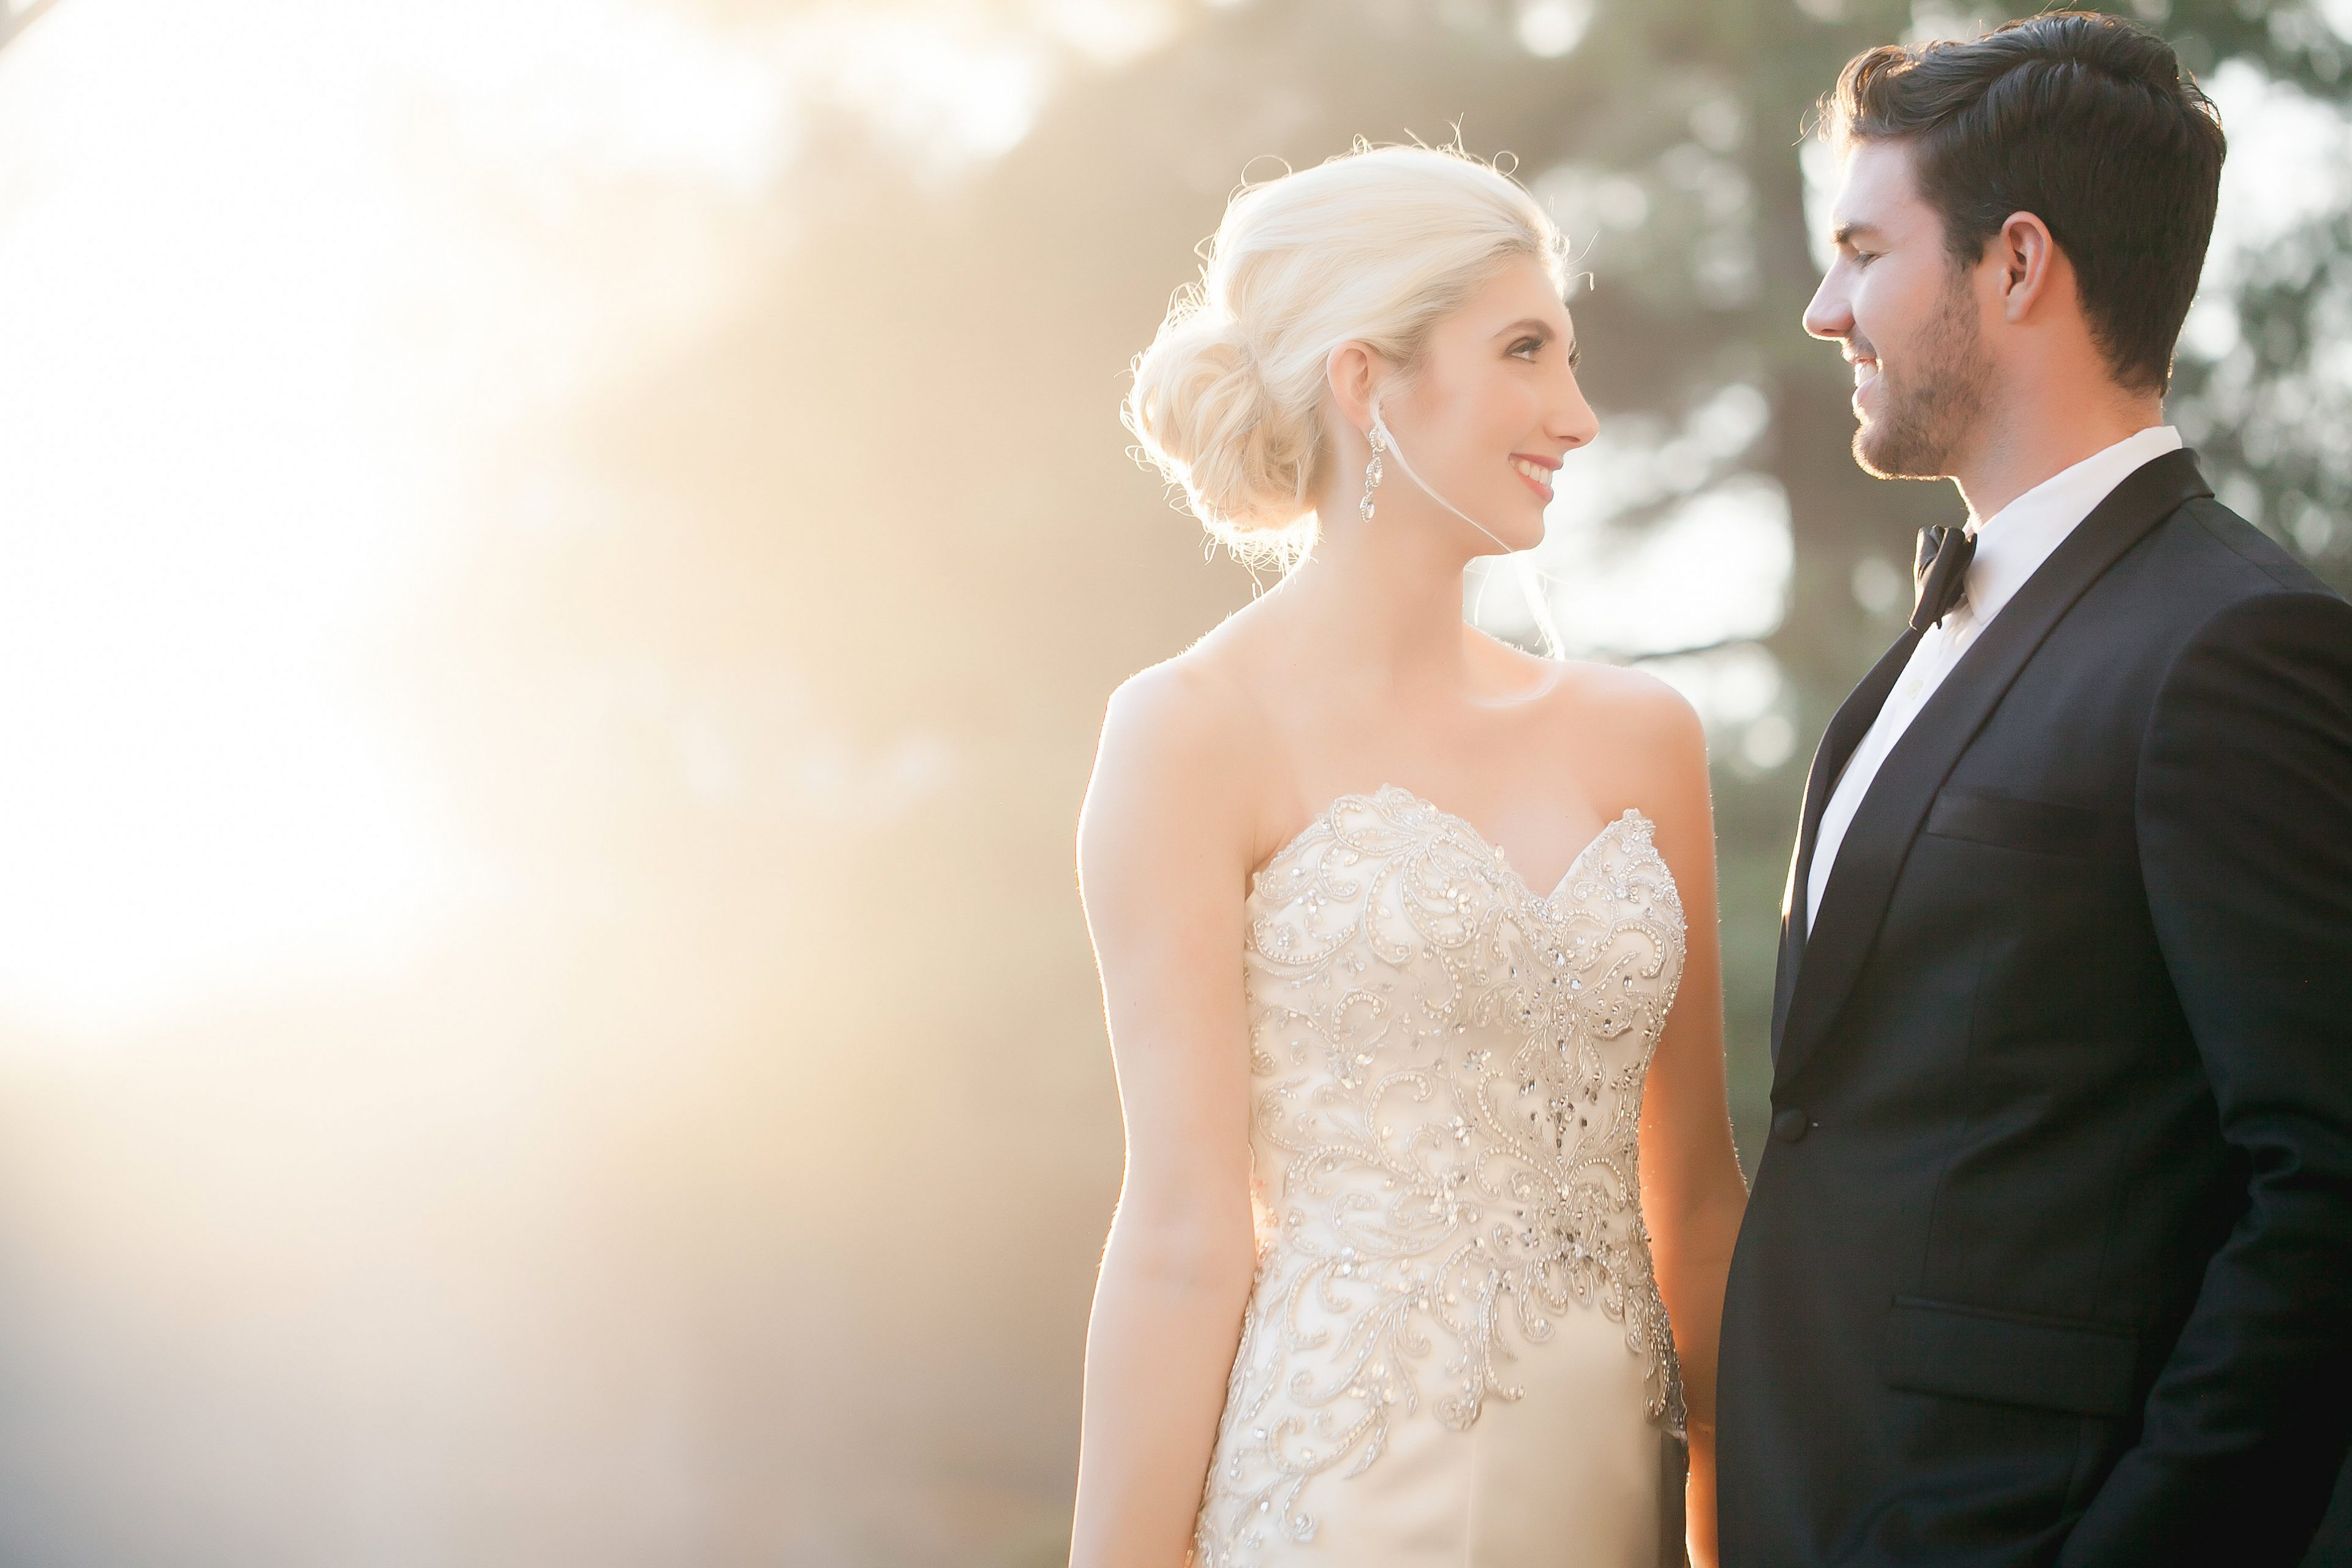 Bride wearing stunning embellished wedding gown from Paige and Elliot